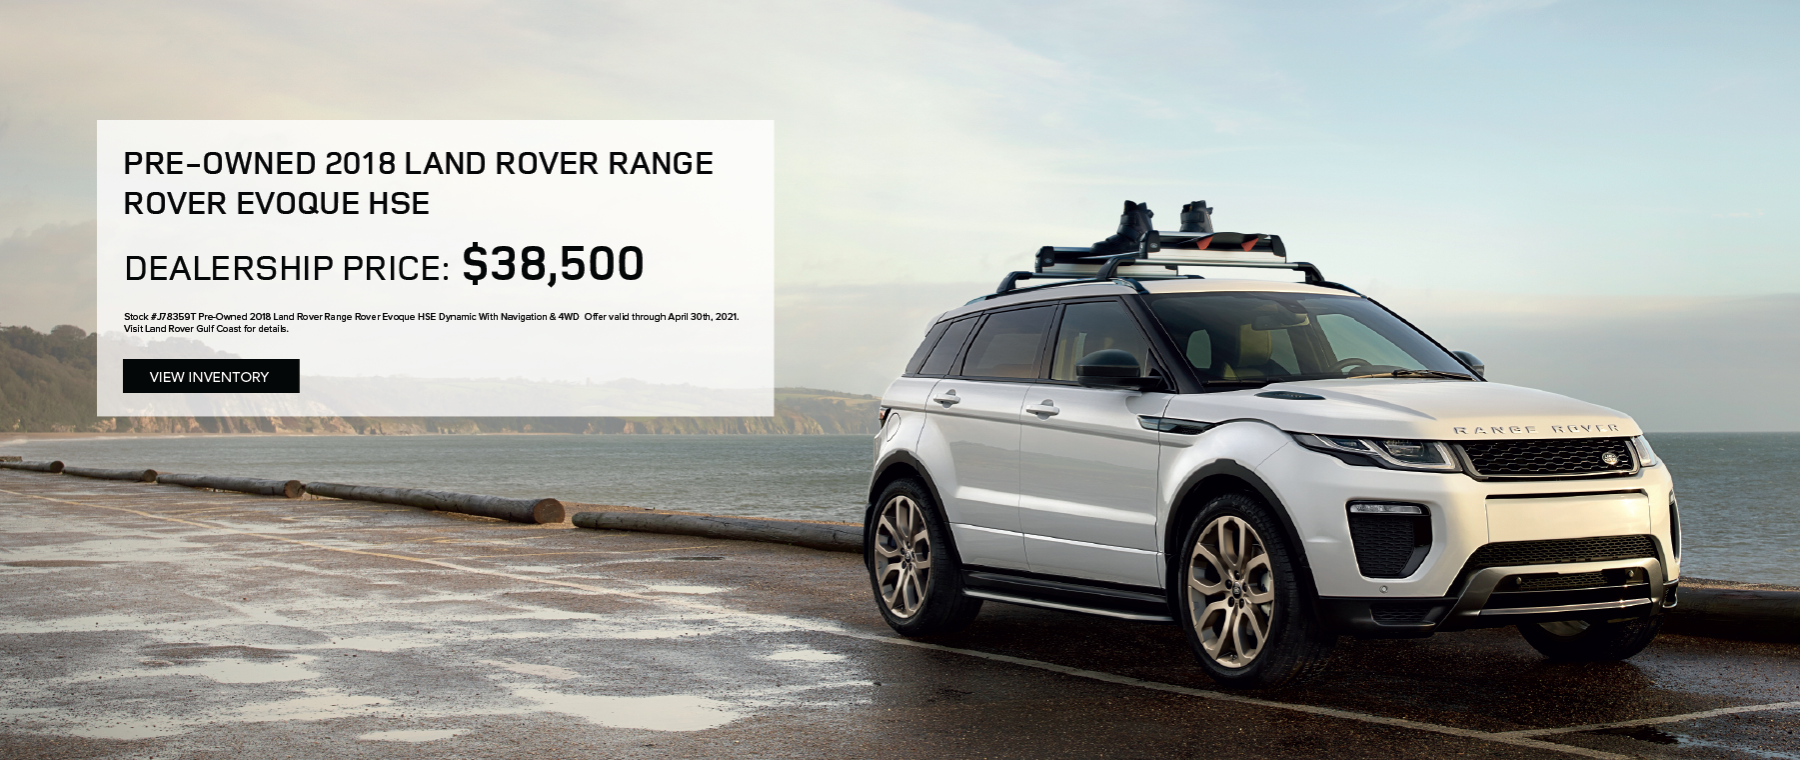 White PRE-OWNED 2018 LAND ROVER RANGE ROVER EVOQUE HSE DYNAMIC WITH NAVIGATION & 4WD on road near water.Click to view vehicle.